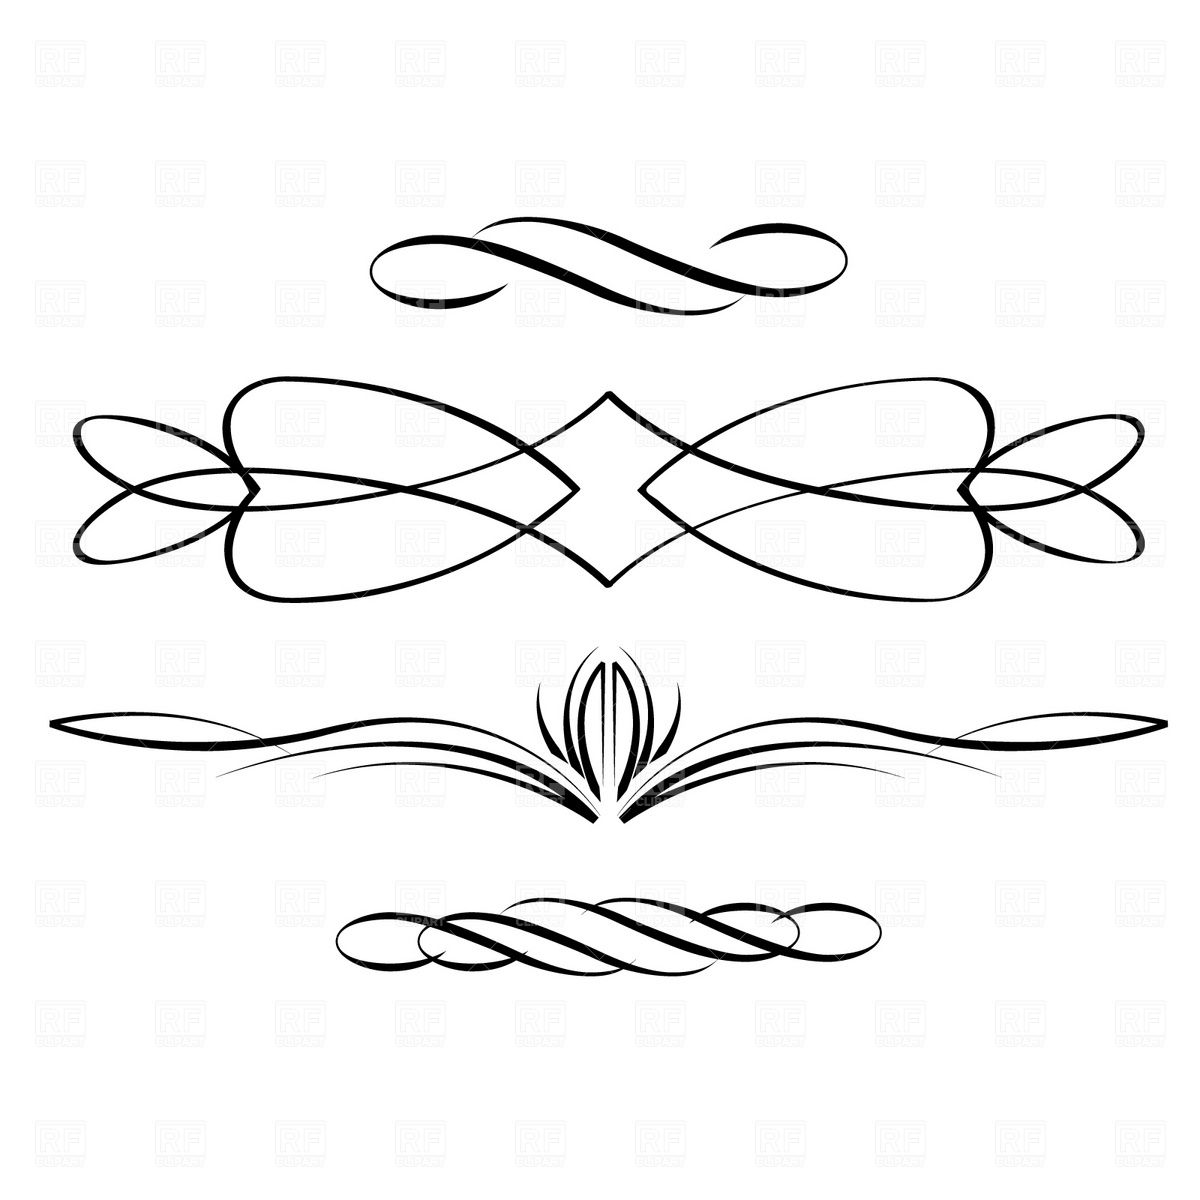 Line Art Design : Free scrolling designs scroll cliparts that